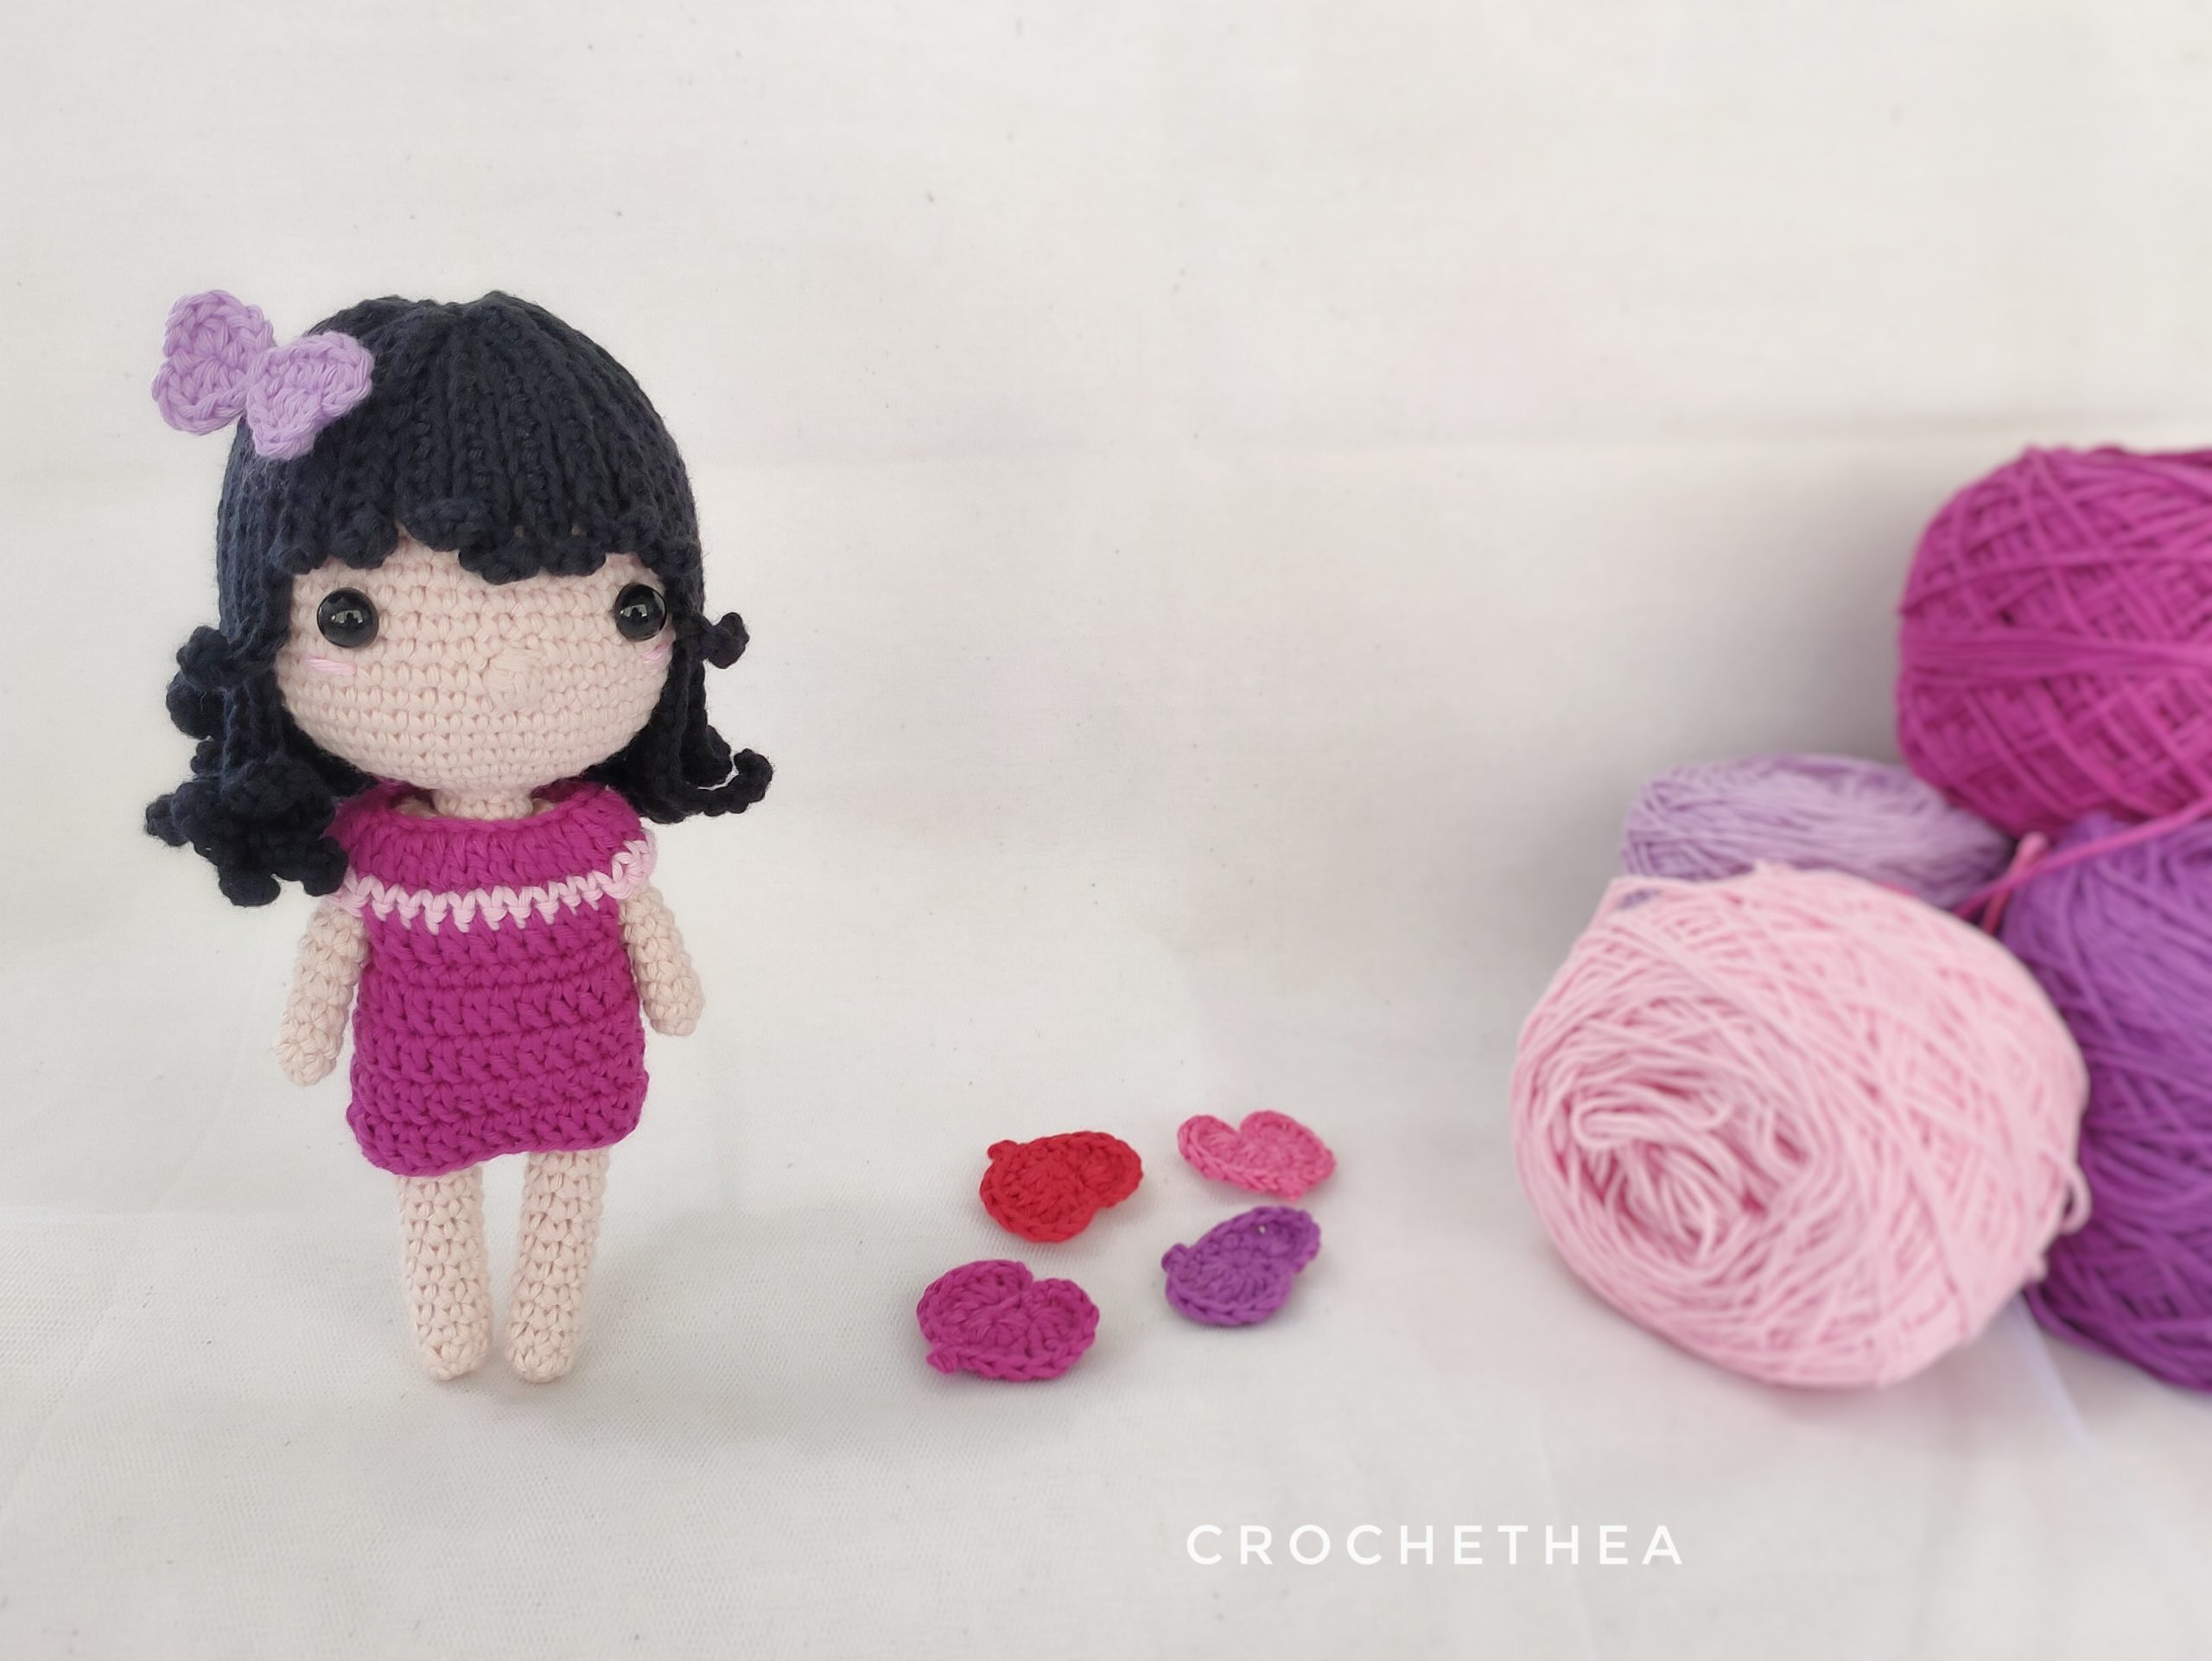 Nola the Little Girl Amigurumi Pattern